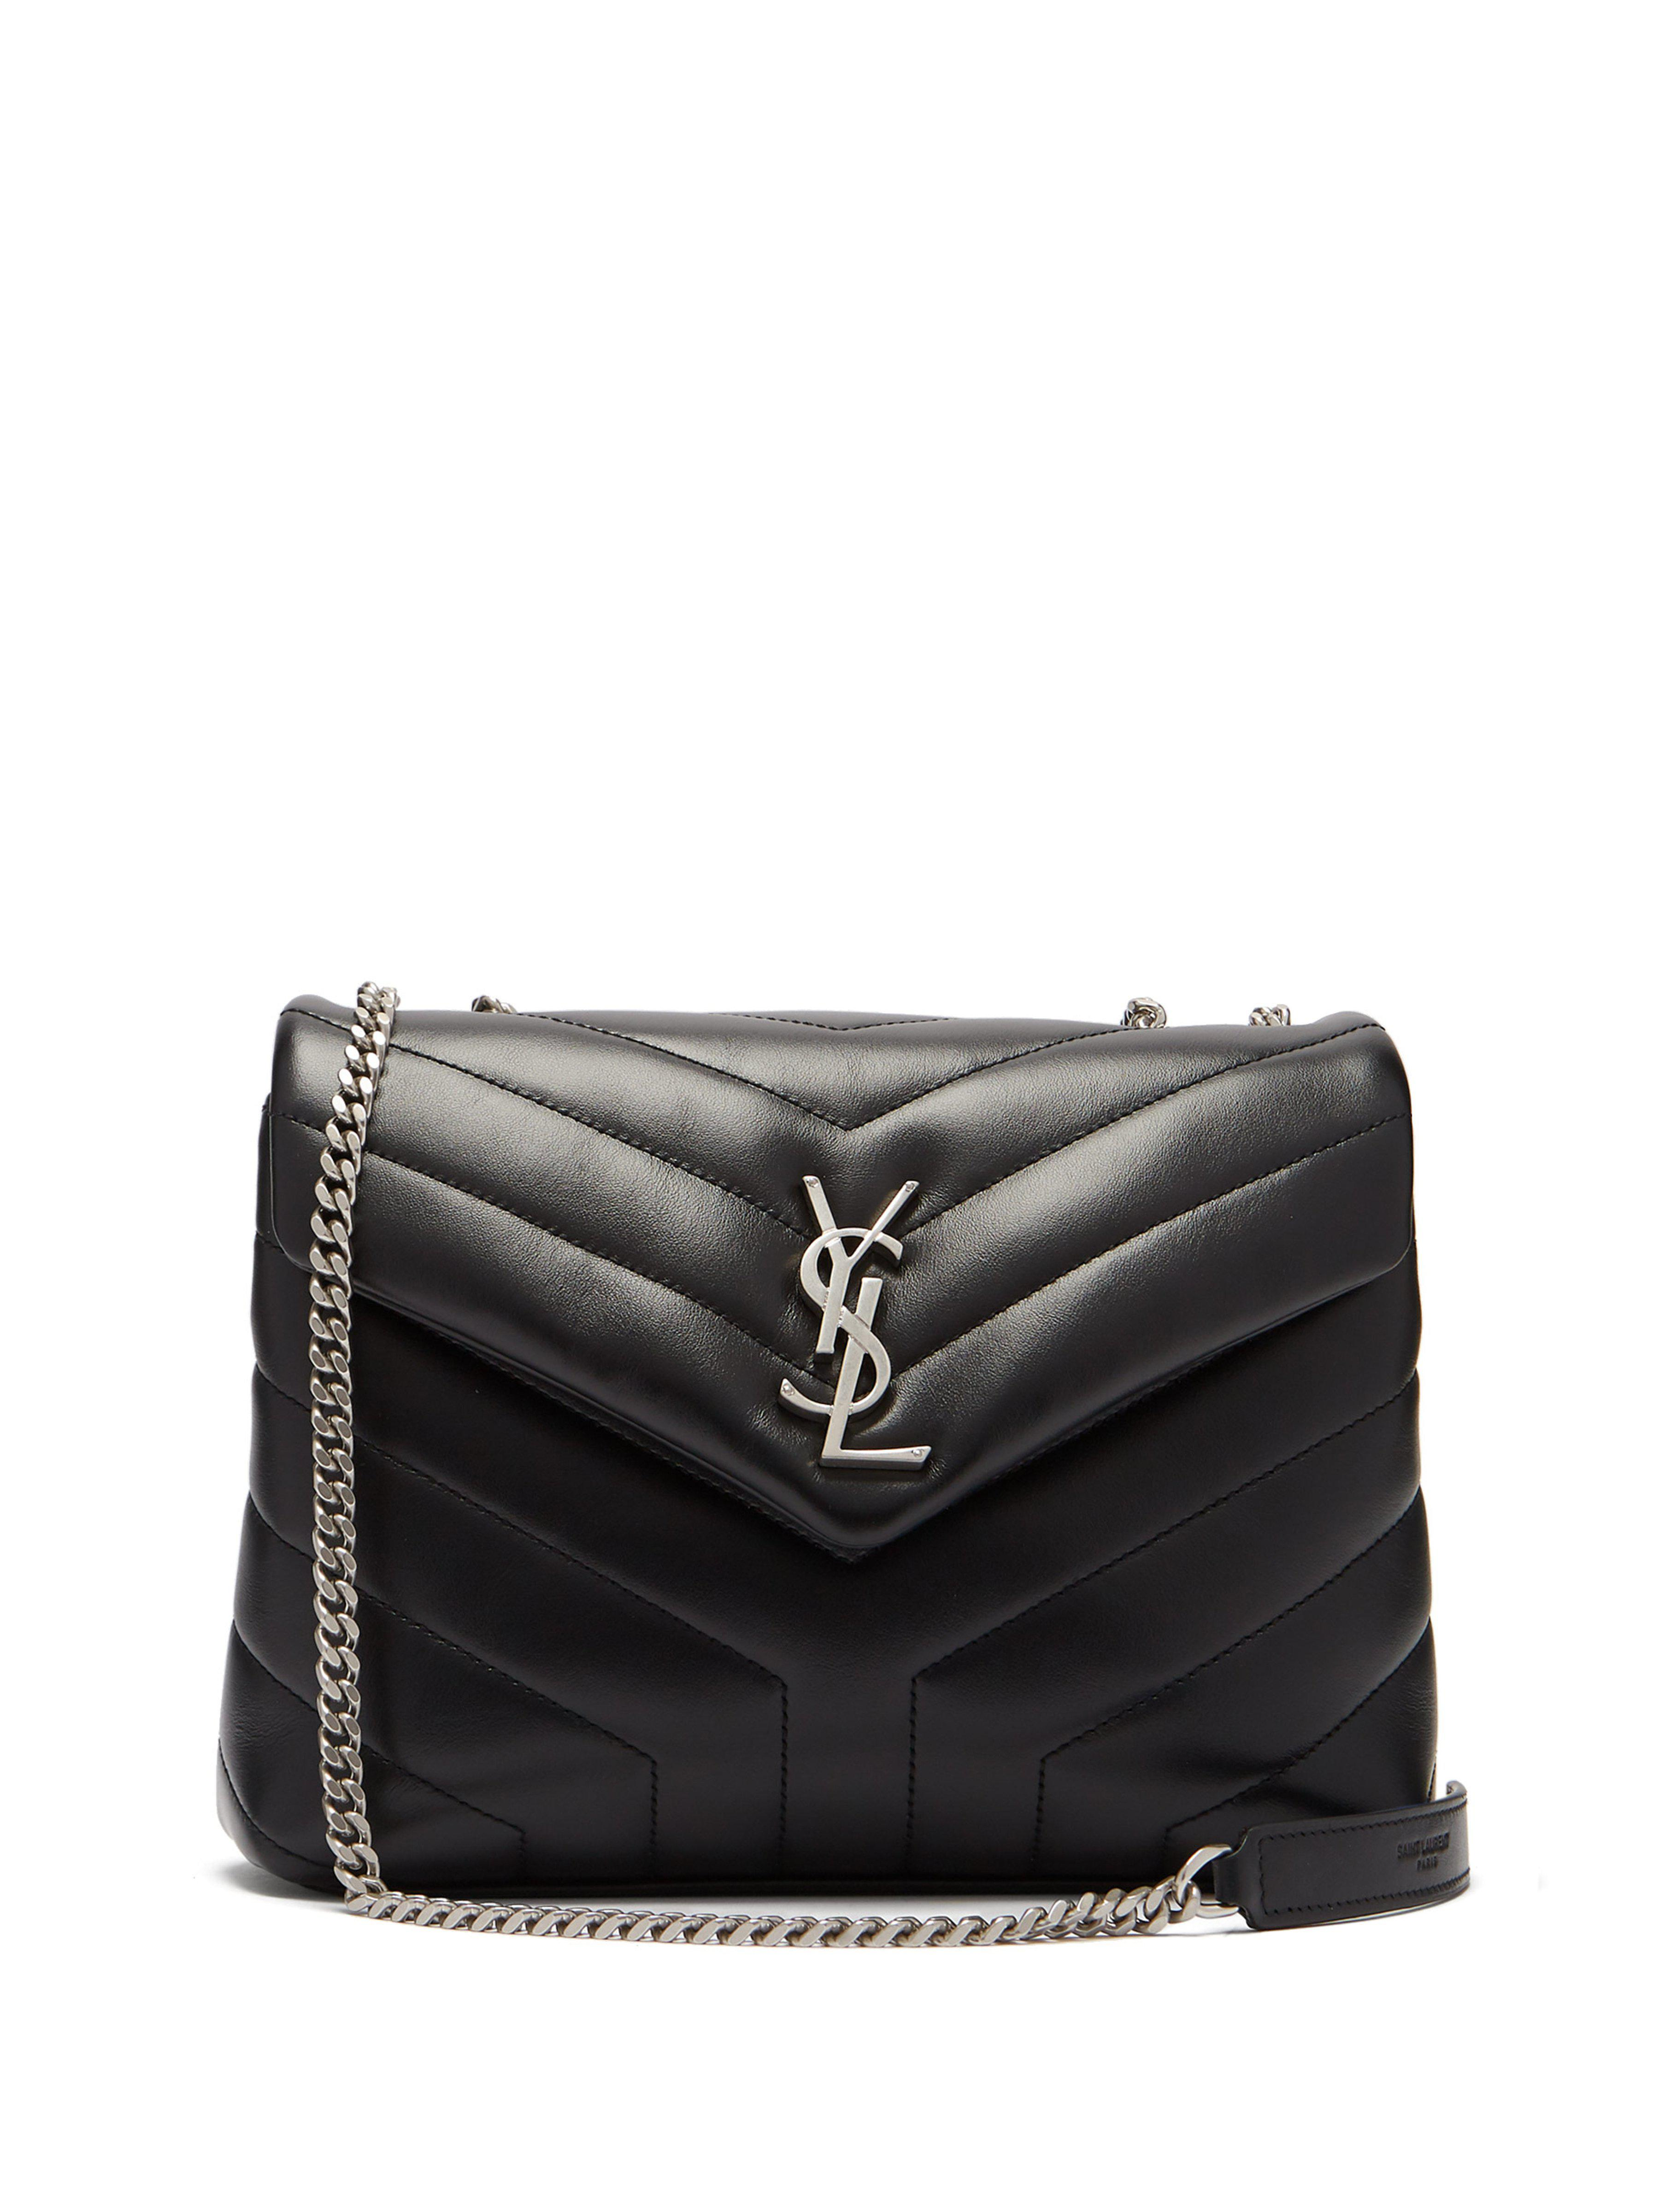 Saint Laurent Loulou Quilted Leather Shoulder Bag in Black - Lyst b617fbc07b233